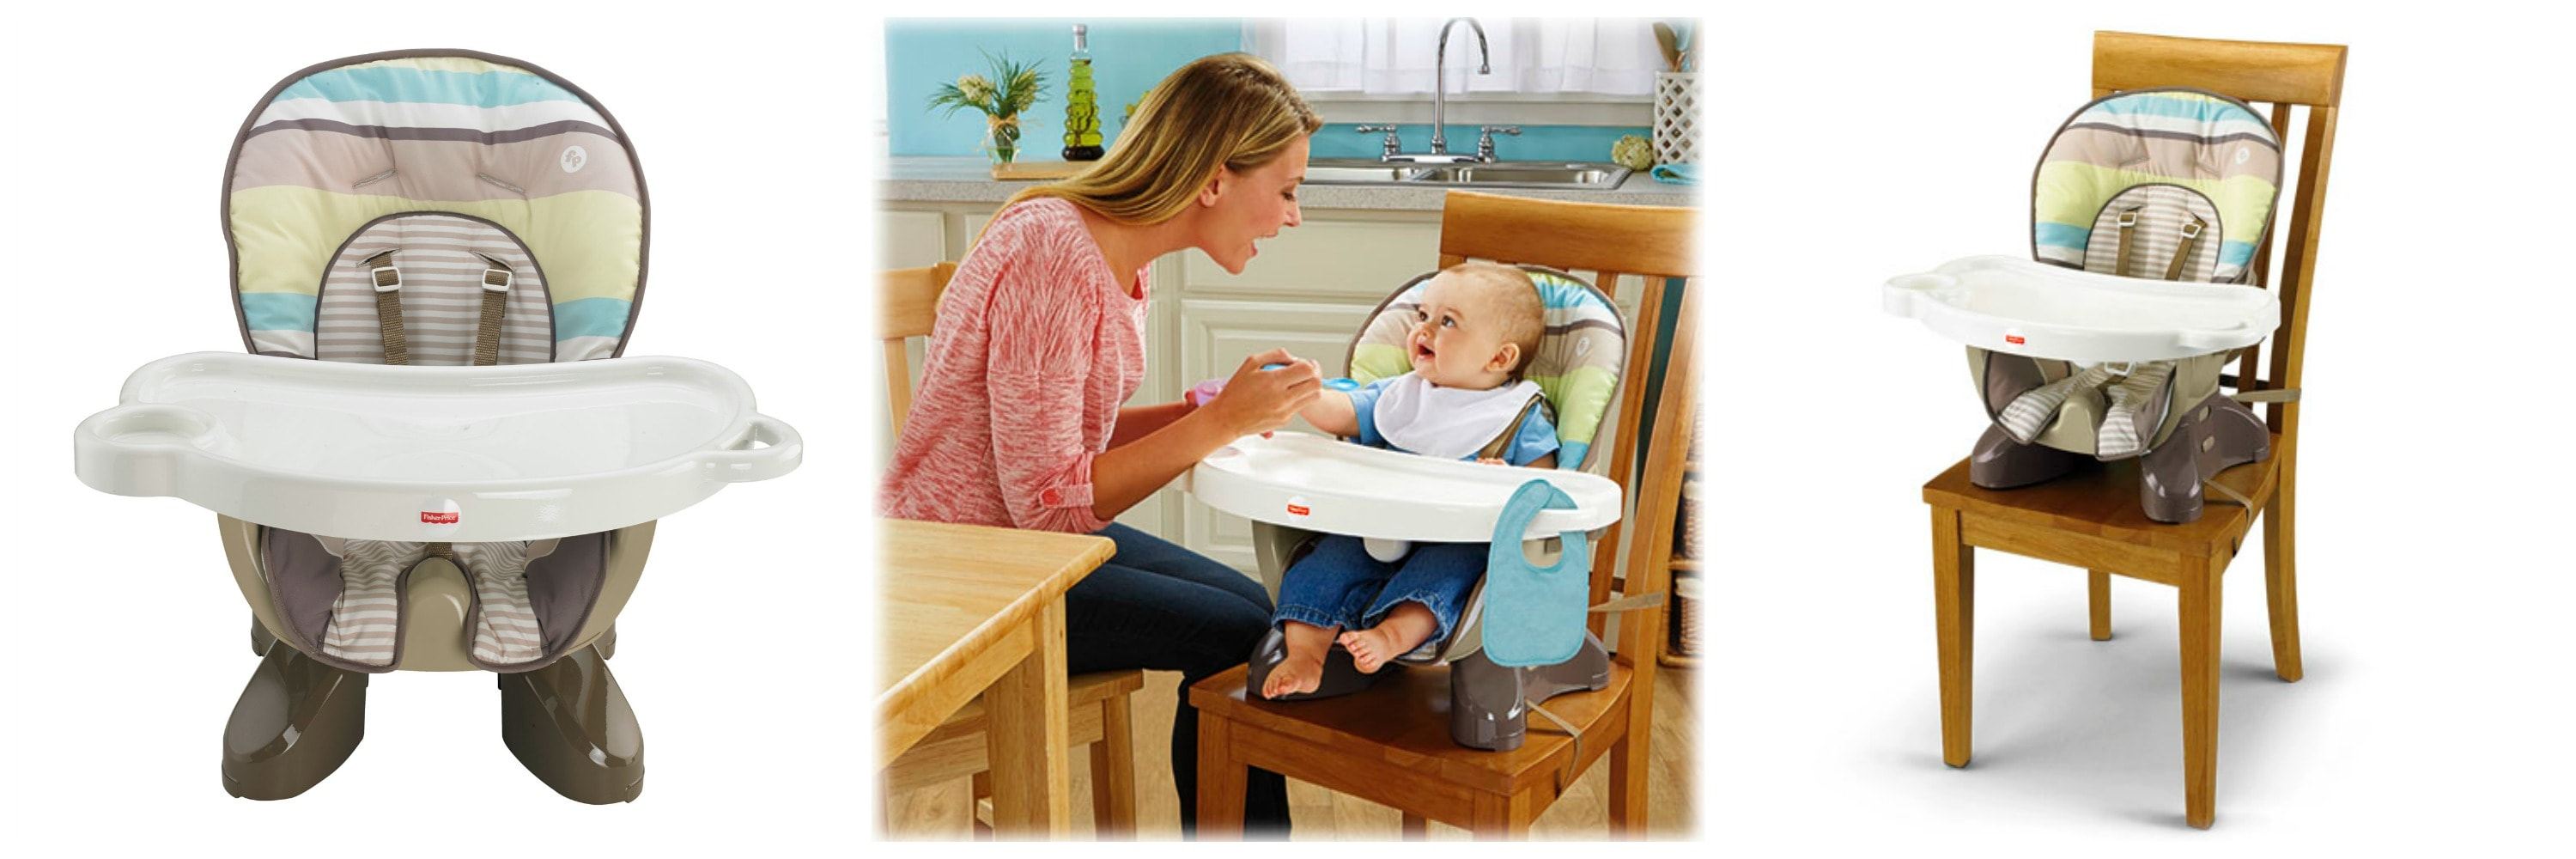 Space saver high chair boy - Gallery Of Space Saver High Chair Boy